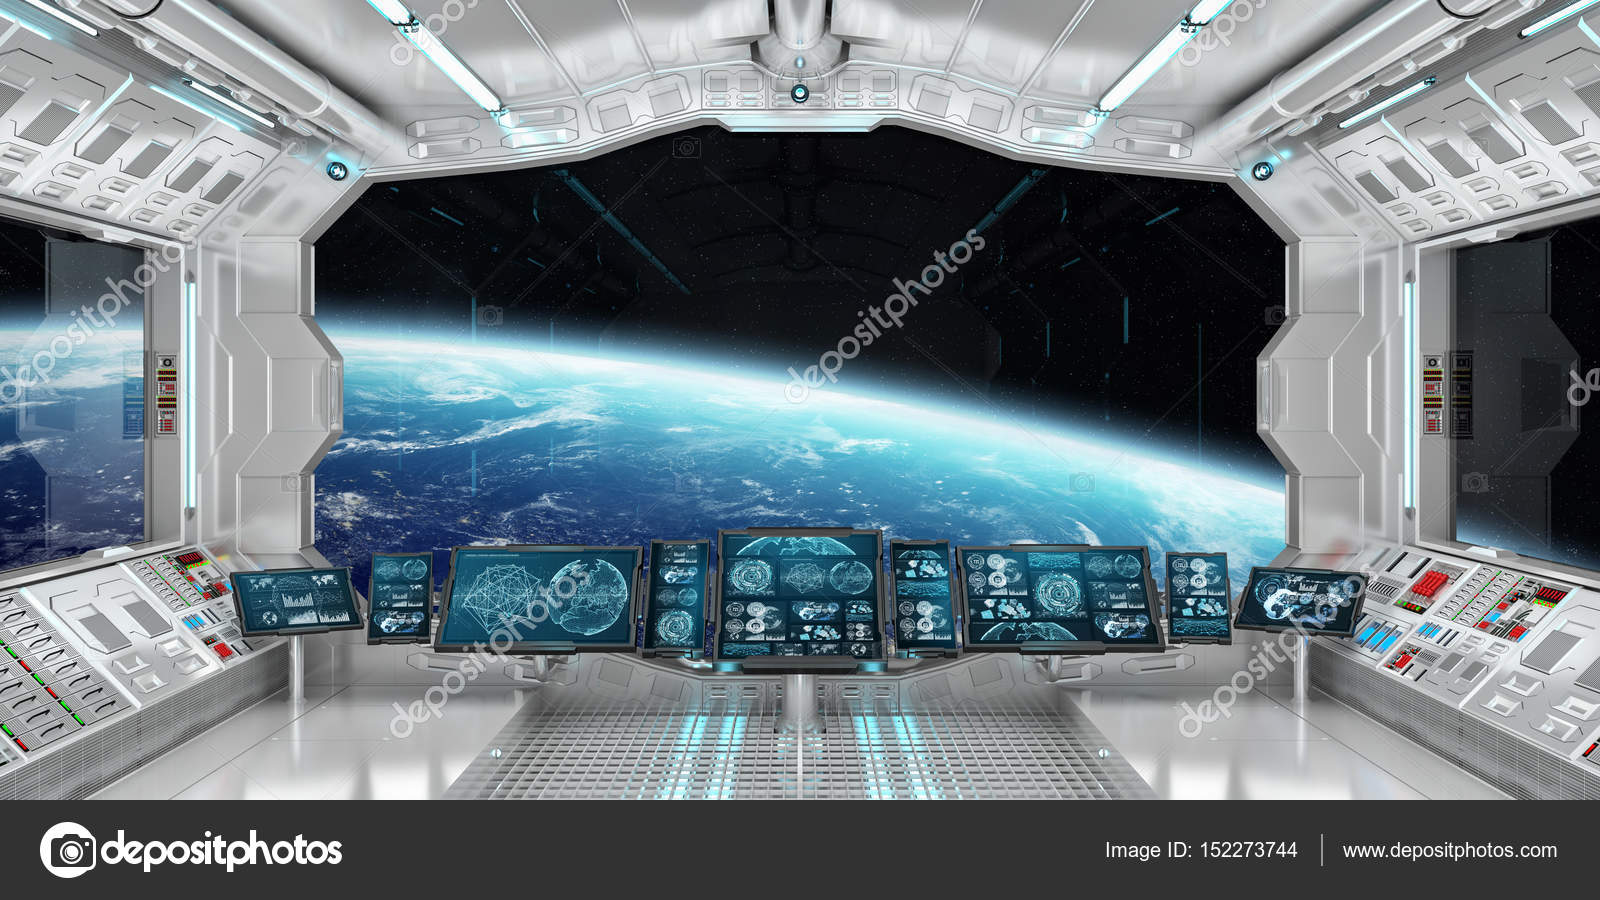 Delightful Spaceship Interior With View On The Planet Earth 3D Rendering El U2014 Stock  Photo